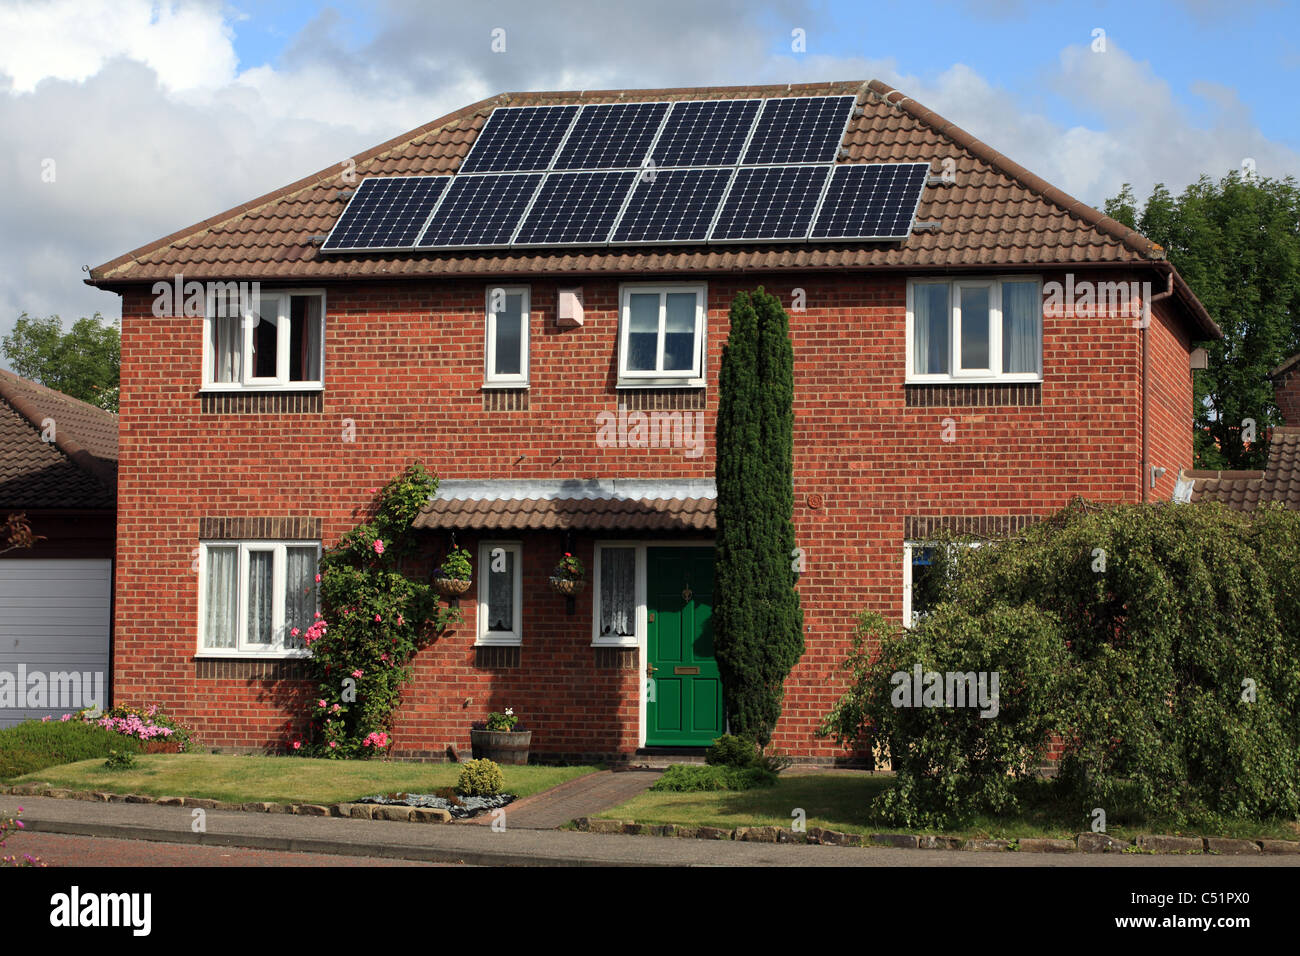 PV Photo voltaic Solar panels on detached house in England UK - Stock Image